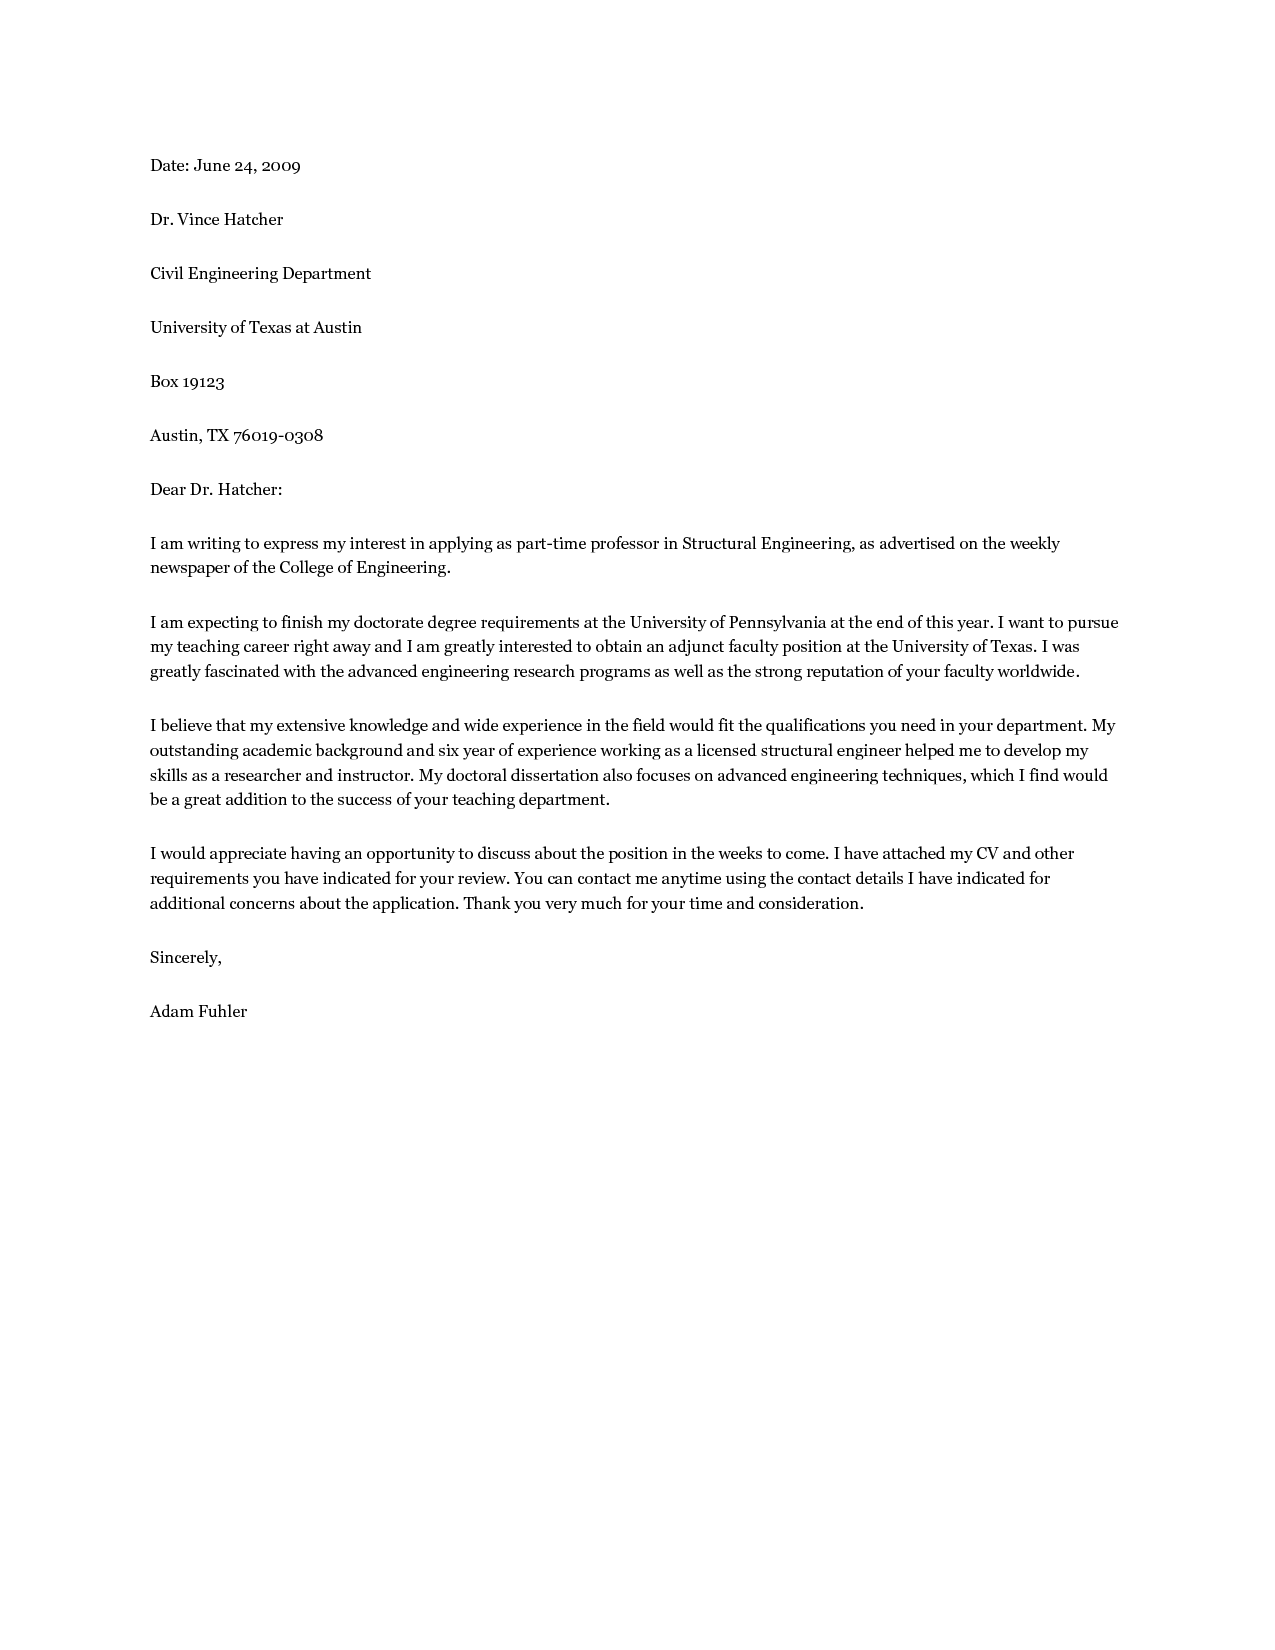 cover letter for adjunct faculty